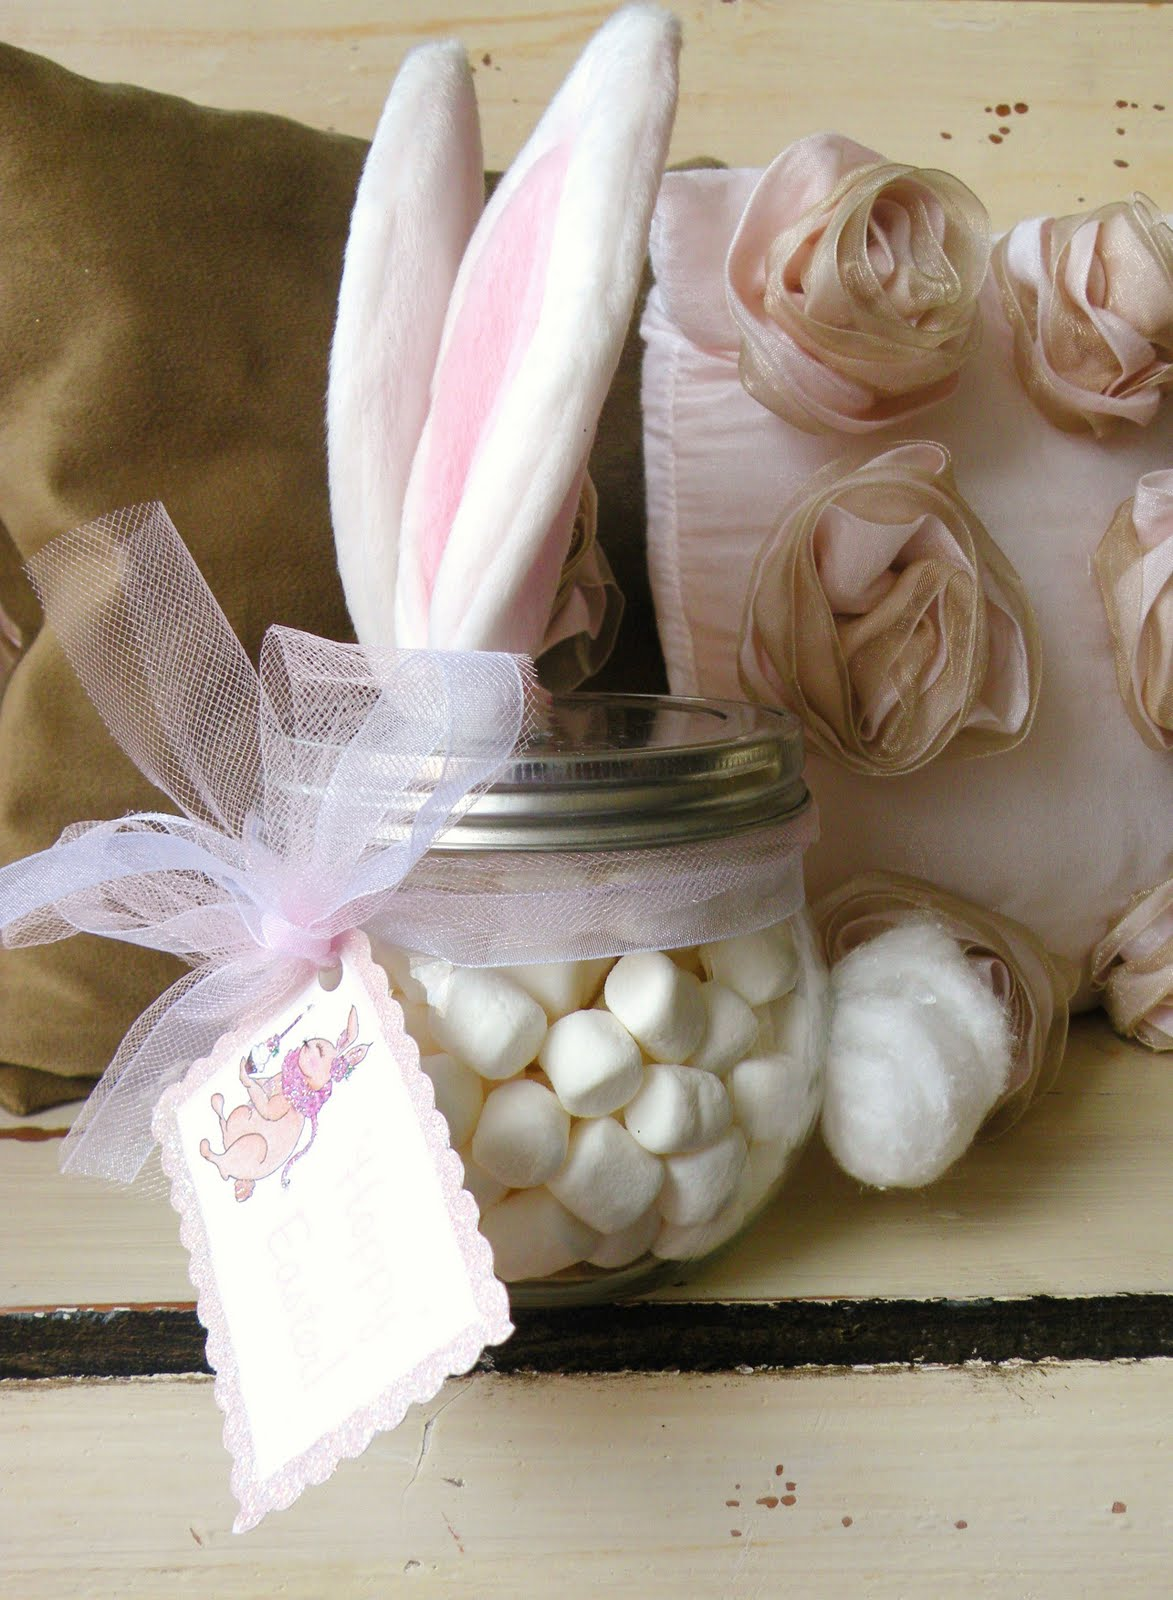 Icing designs diy easter bunny jar negle Choice Image